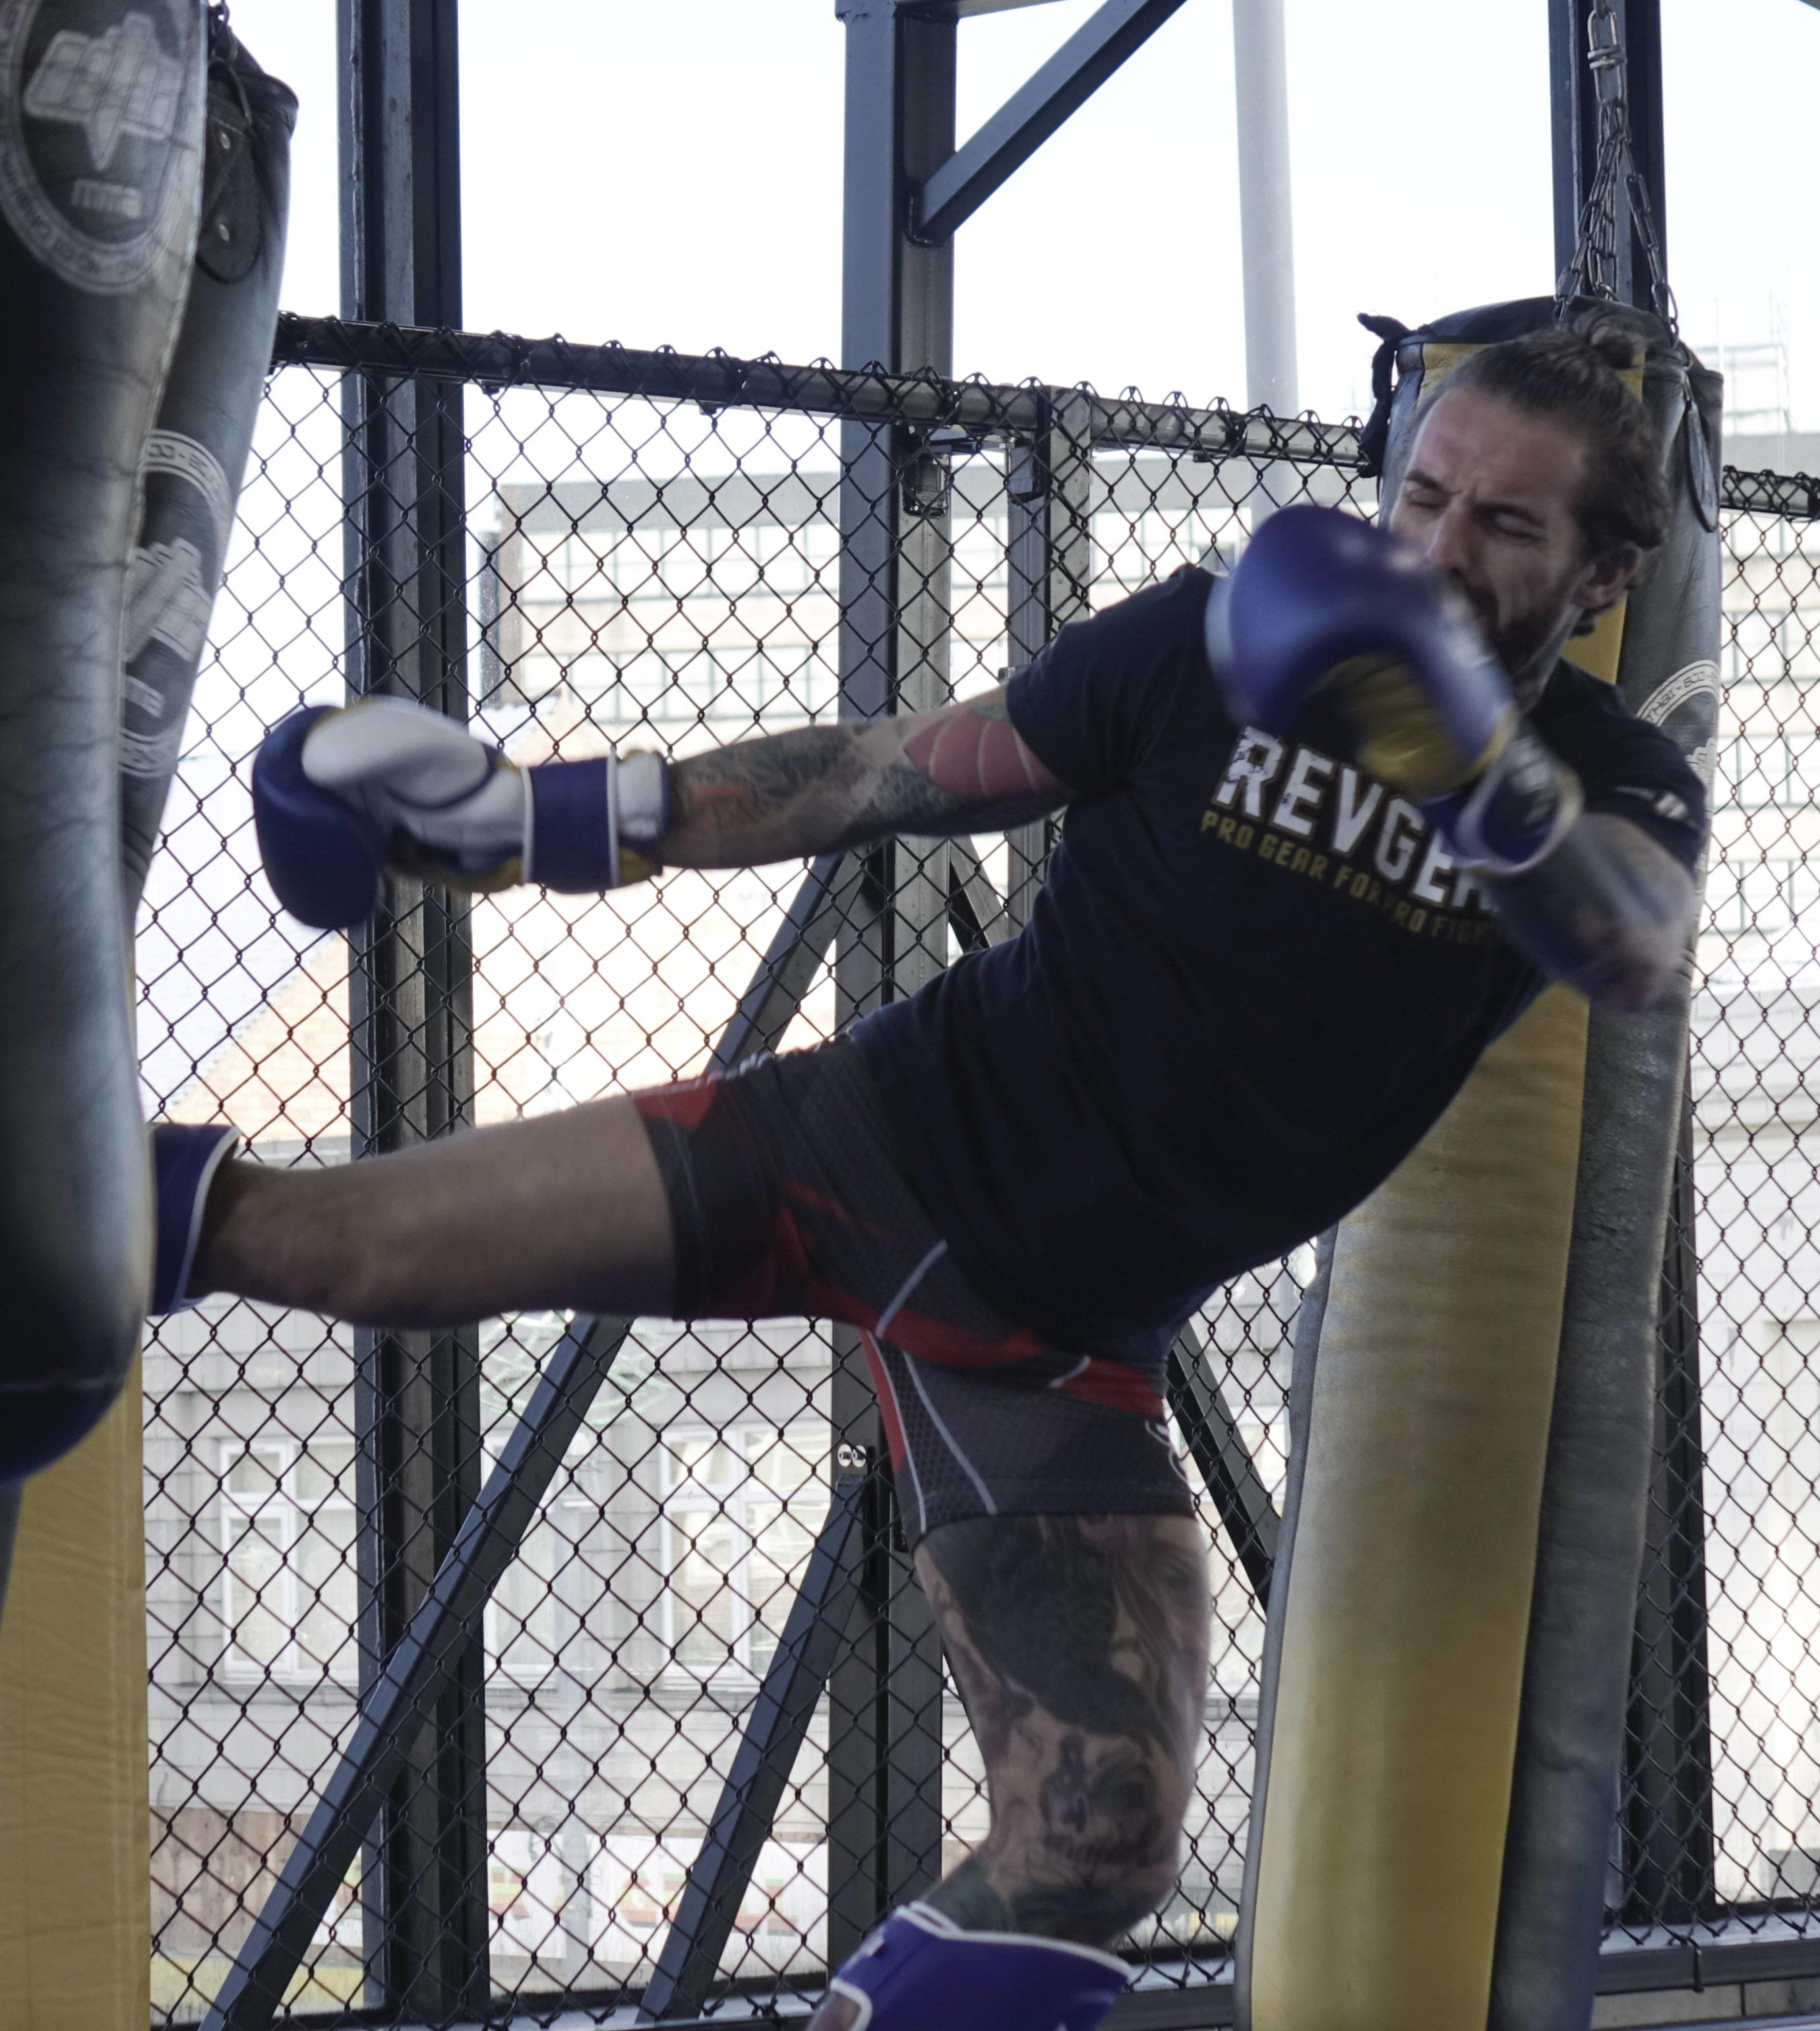 Aaron Chalmers has kicked down the doors to pro MMA from a TV career